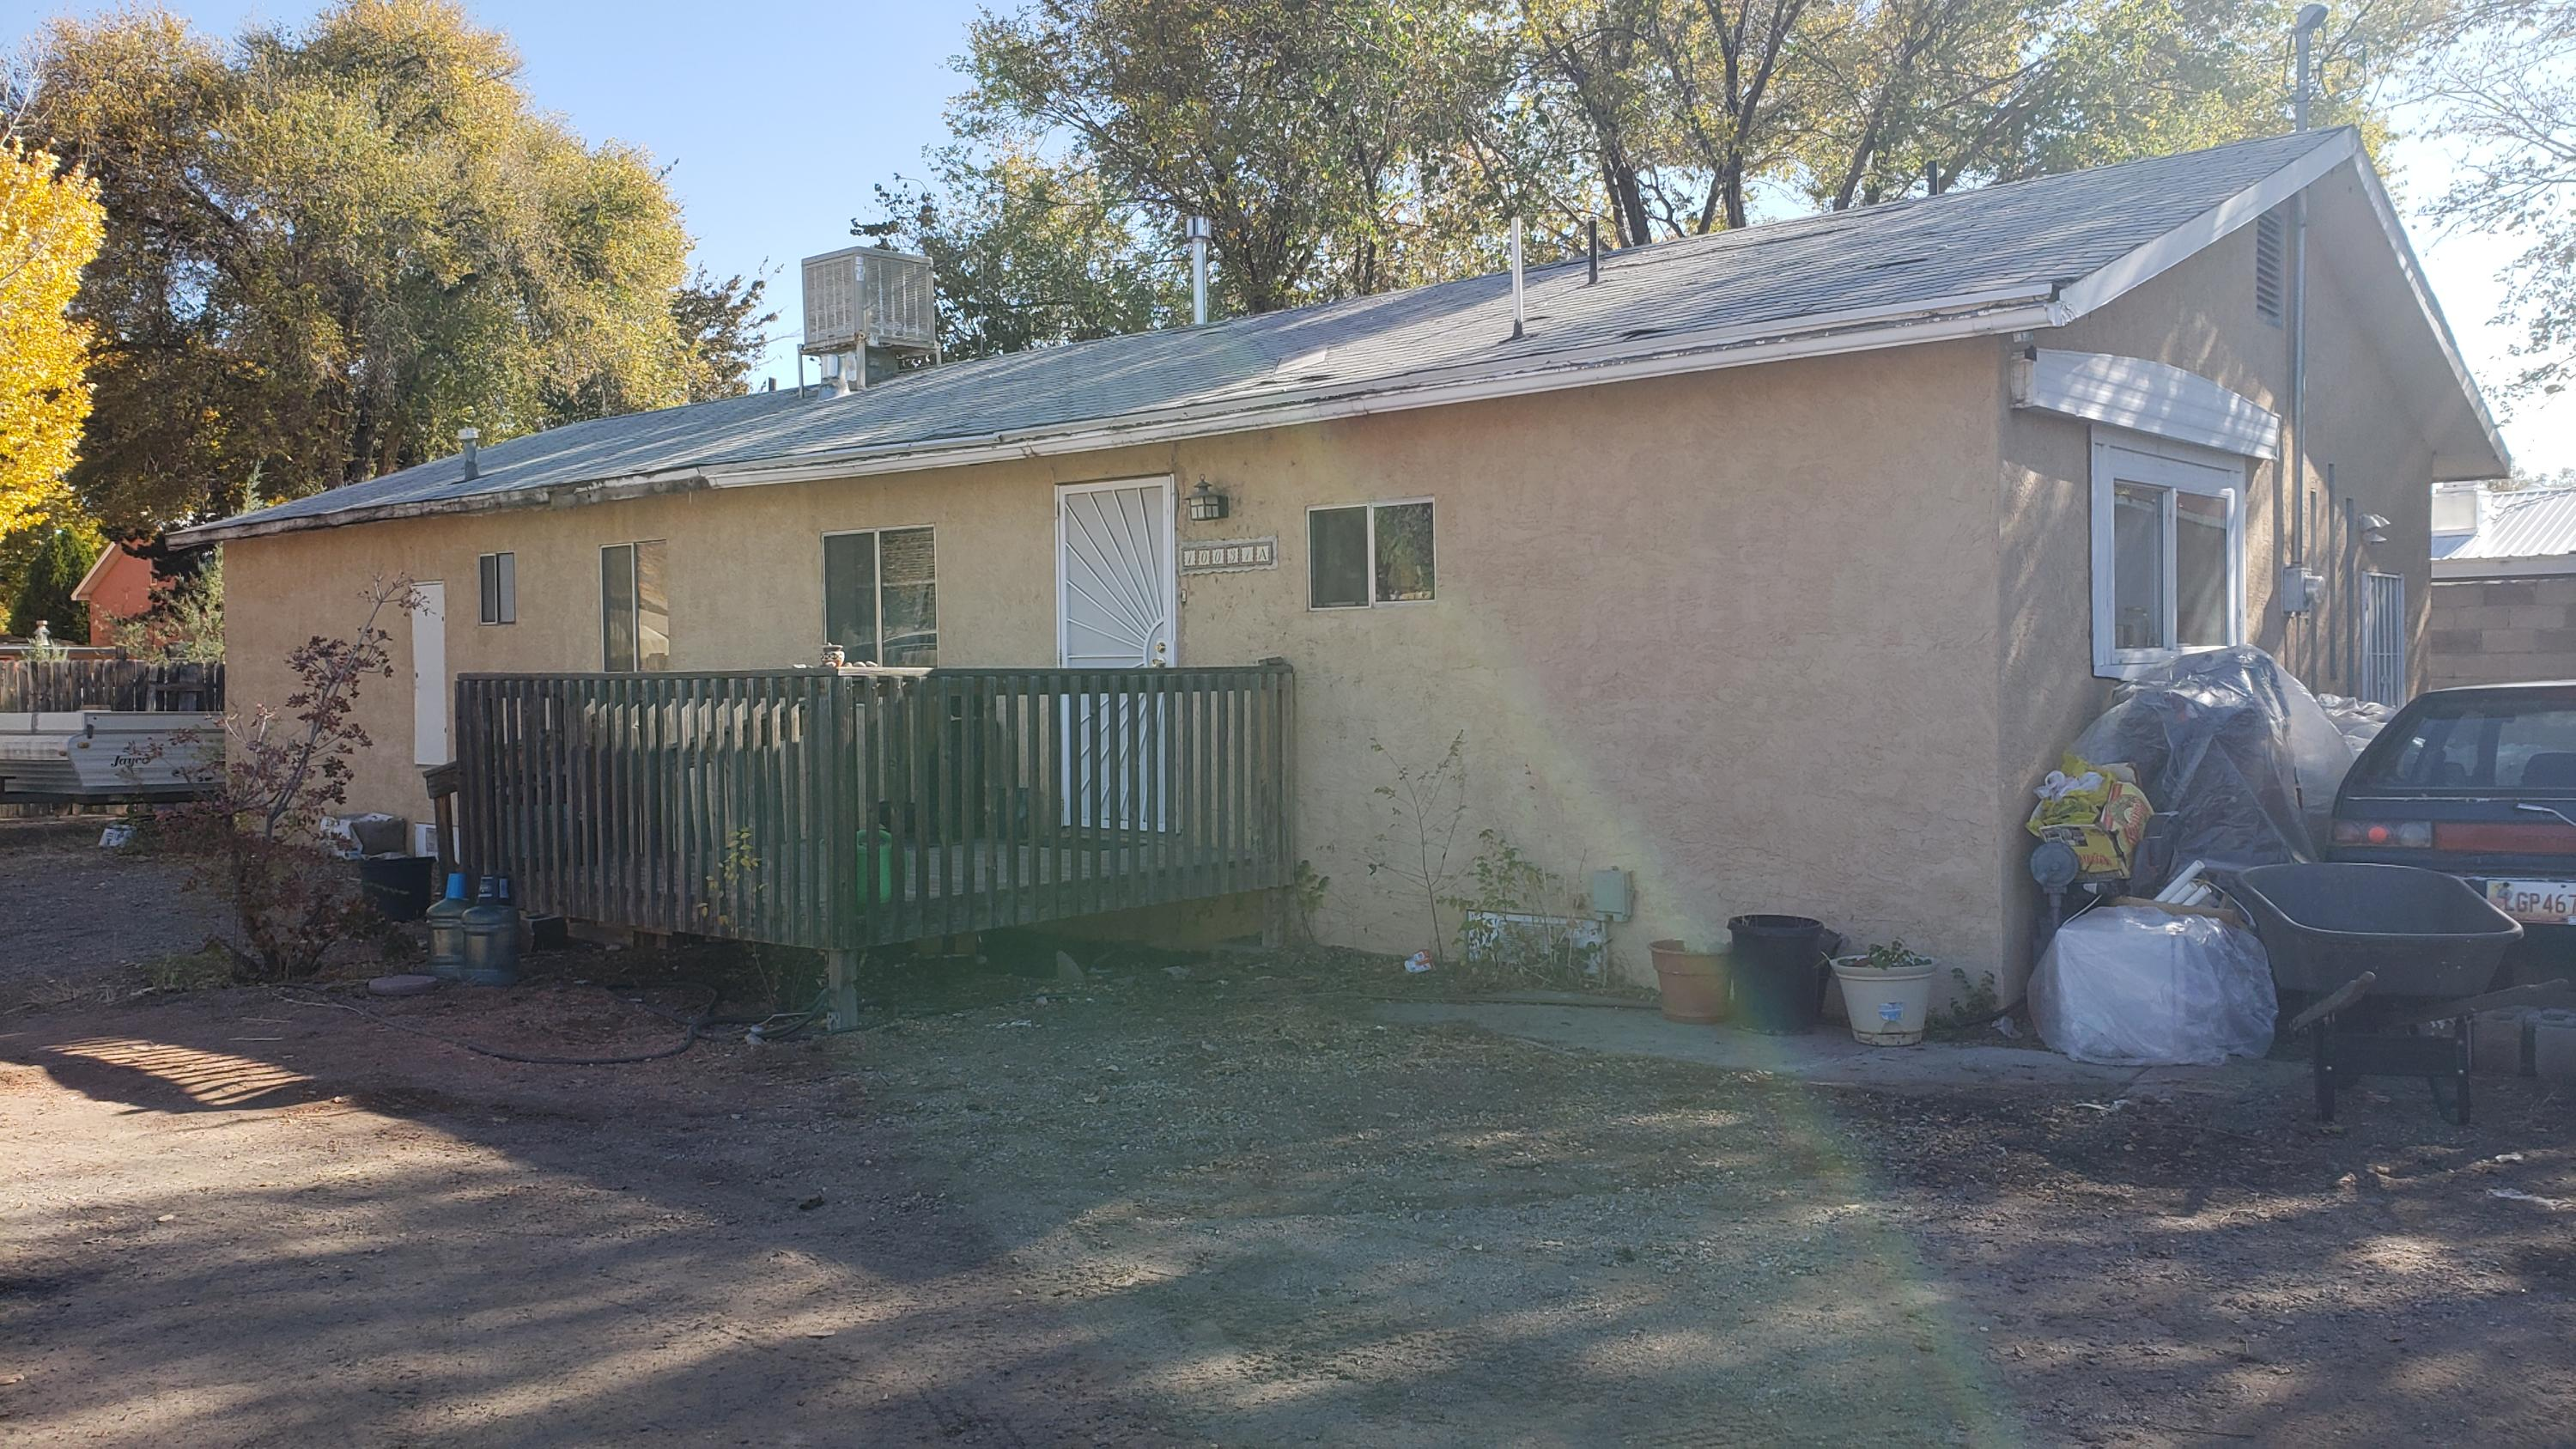 Tenant occupied, 3 bedroom, 2 large full baths, large master and kitchen.  Newer evap cooler.  New roof being installed in October.  Tenant would like to stay but leave with a 30 day notice.  As is, this is a great opportunity for a home in the north valley on a private drive!